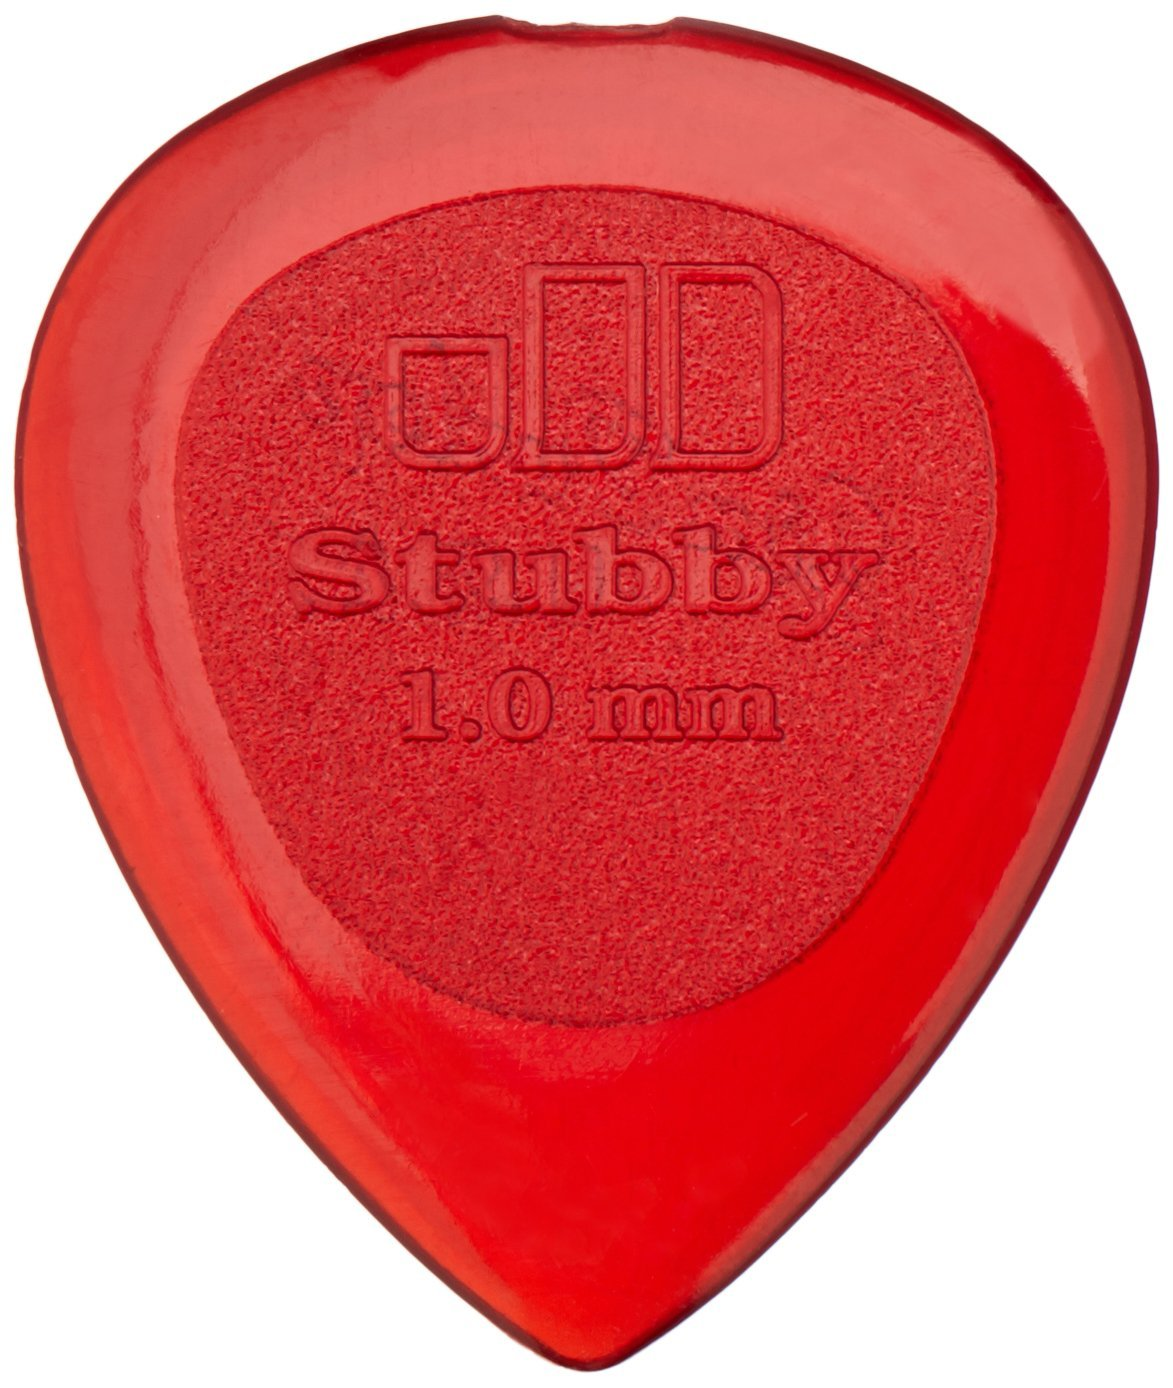 Dunlop 474R1.0 Stubby, Red, 1.0mm, 24/Bag